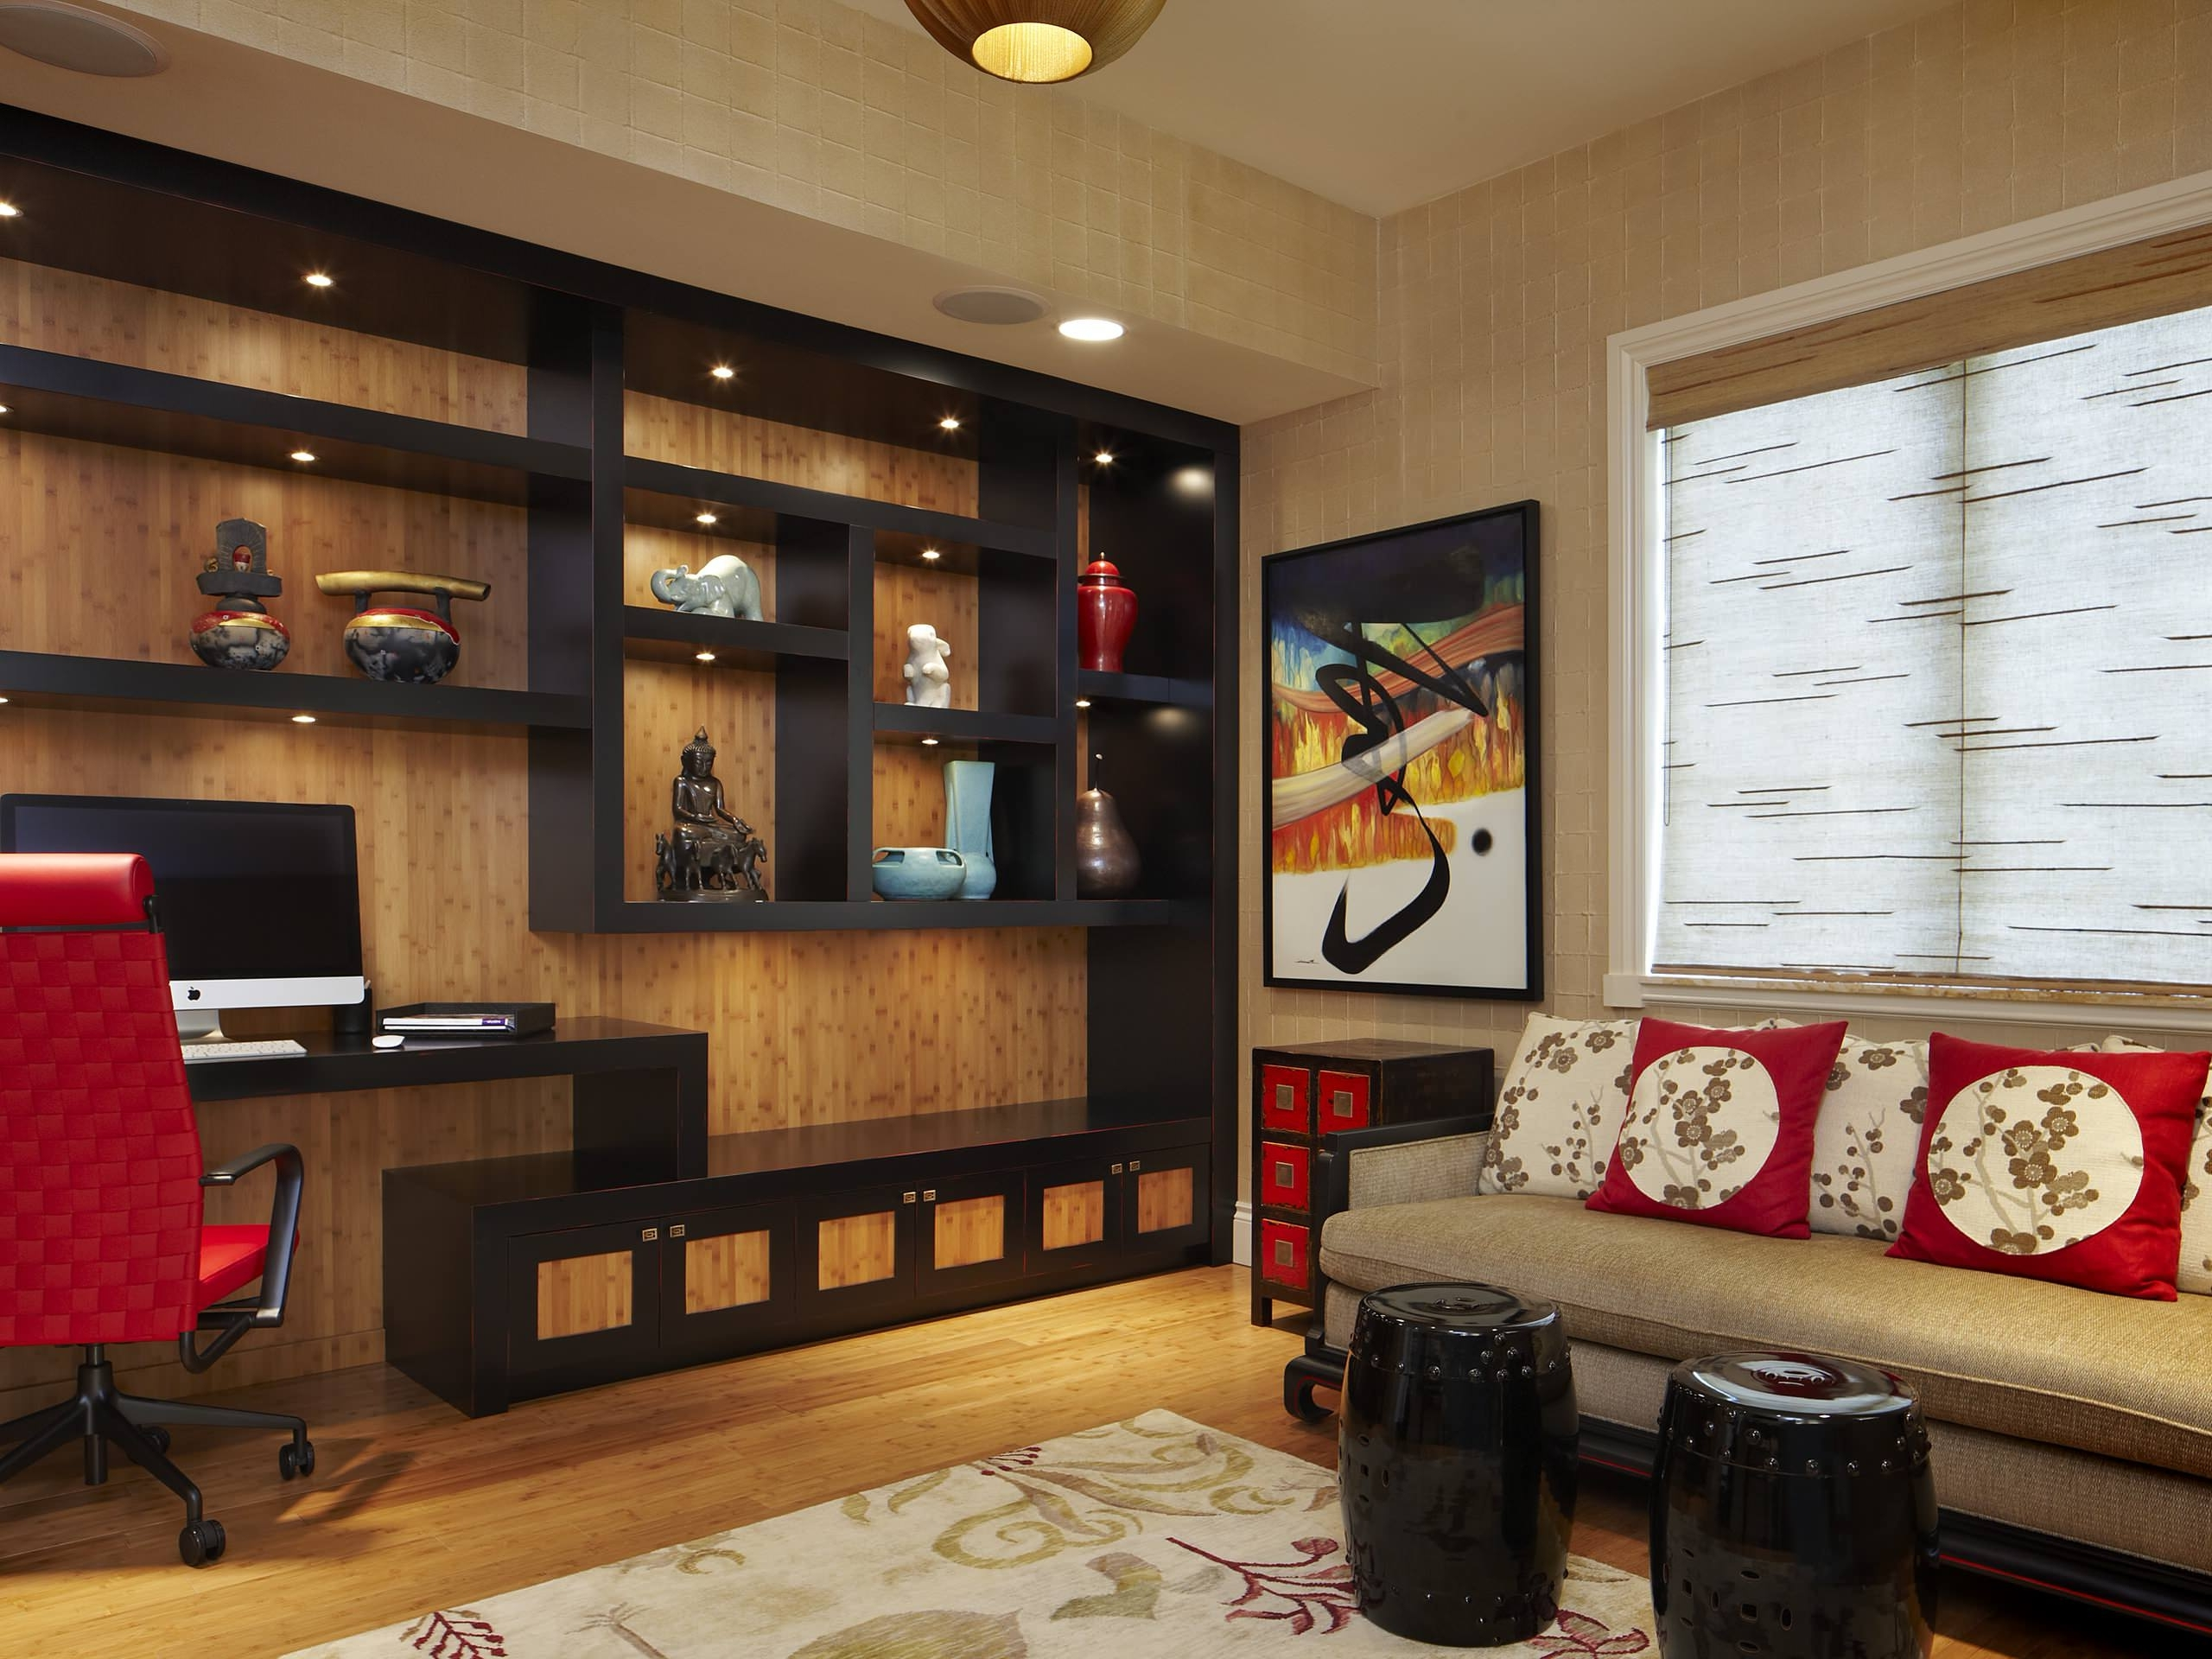 Home Design: Mid Century Modern Shelving With Masculine Wall Art With Well Known Masculine Wall Art (View 7 of 15)